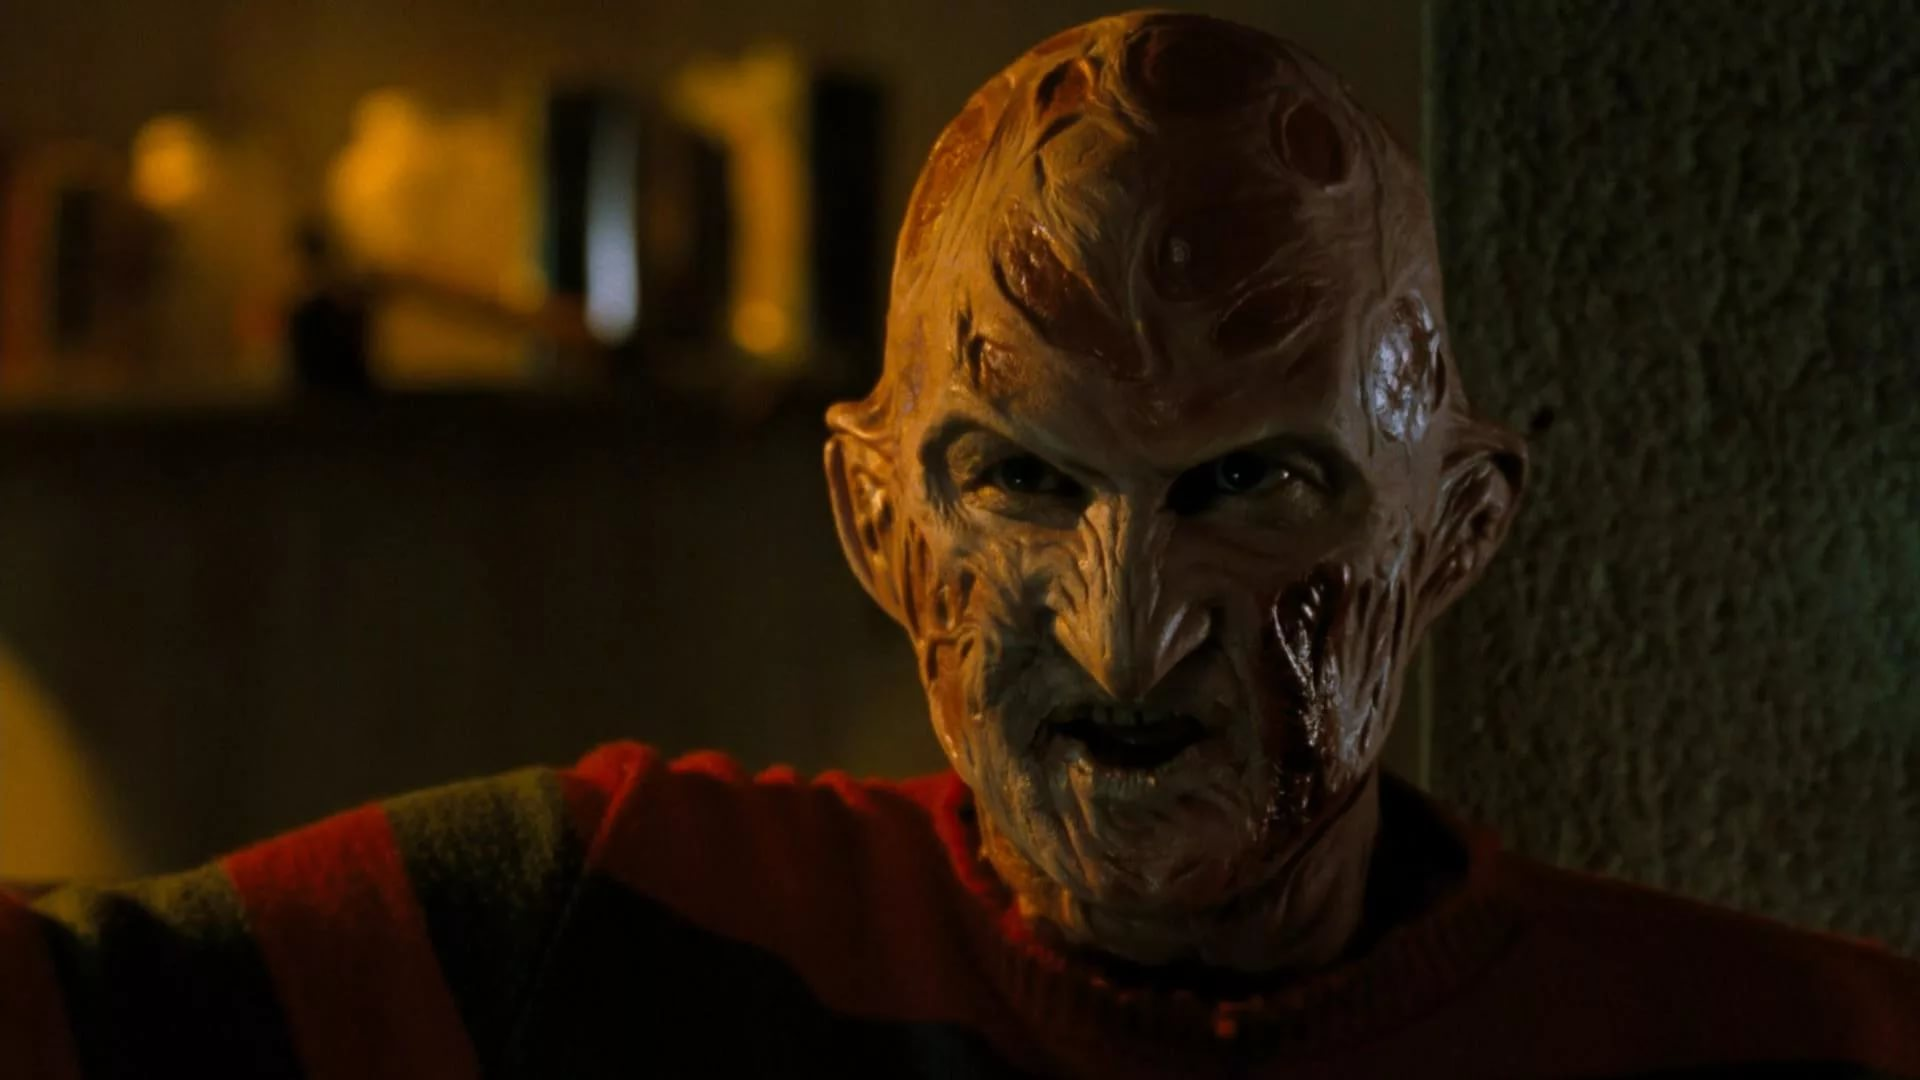 Jackie Earle Haley as Freddy Krueger in A Nightmare on Elm Street (2010)